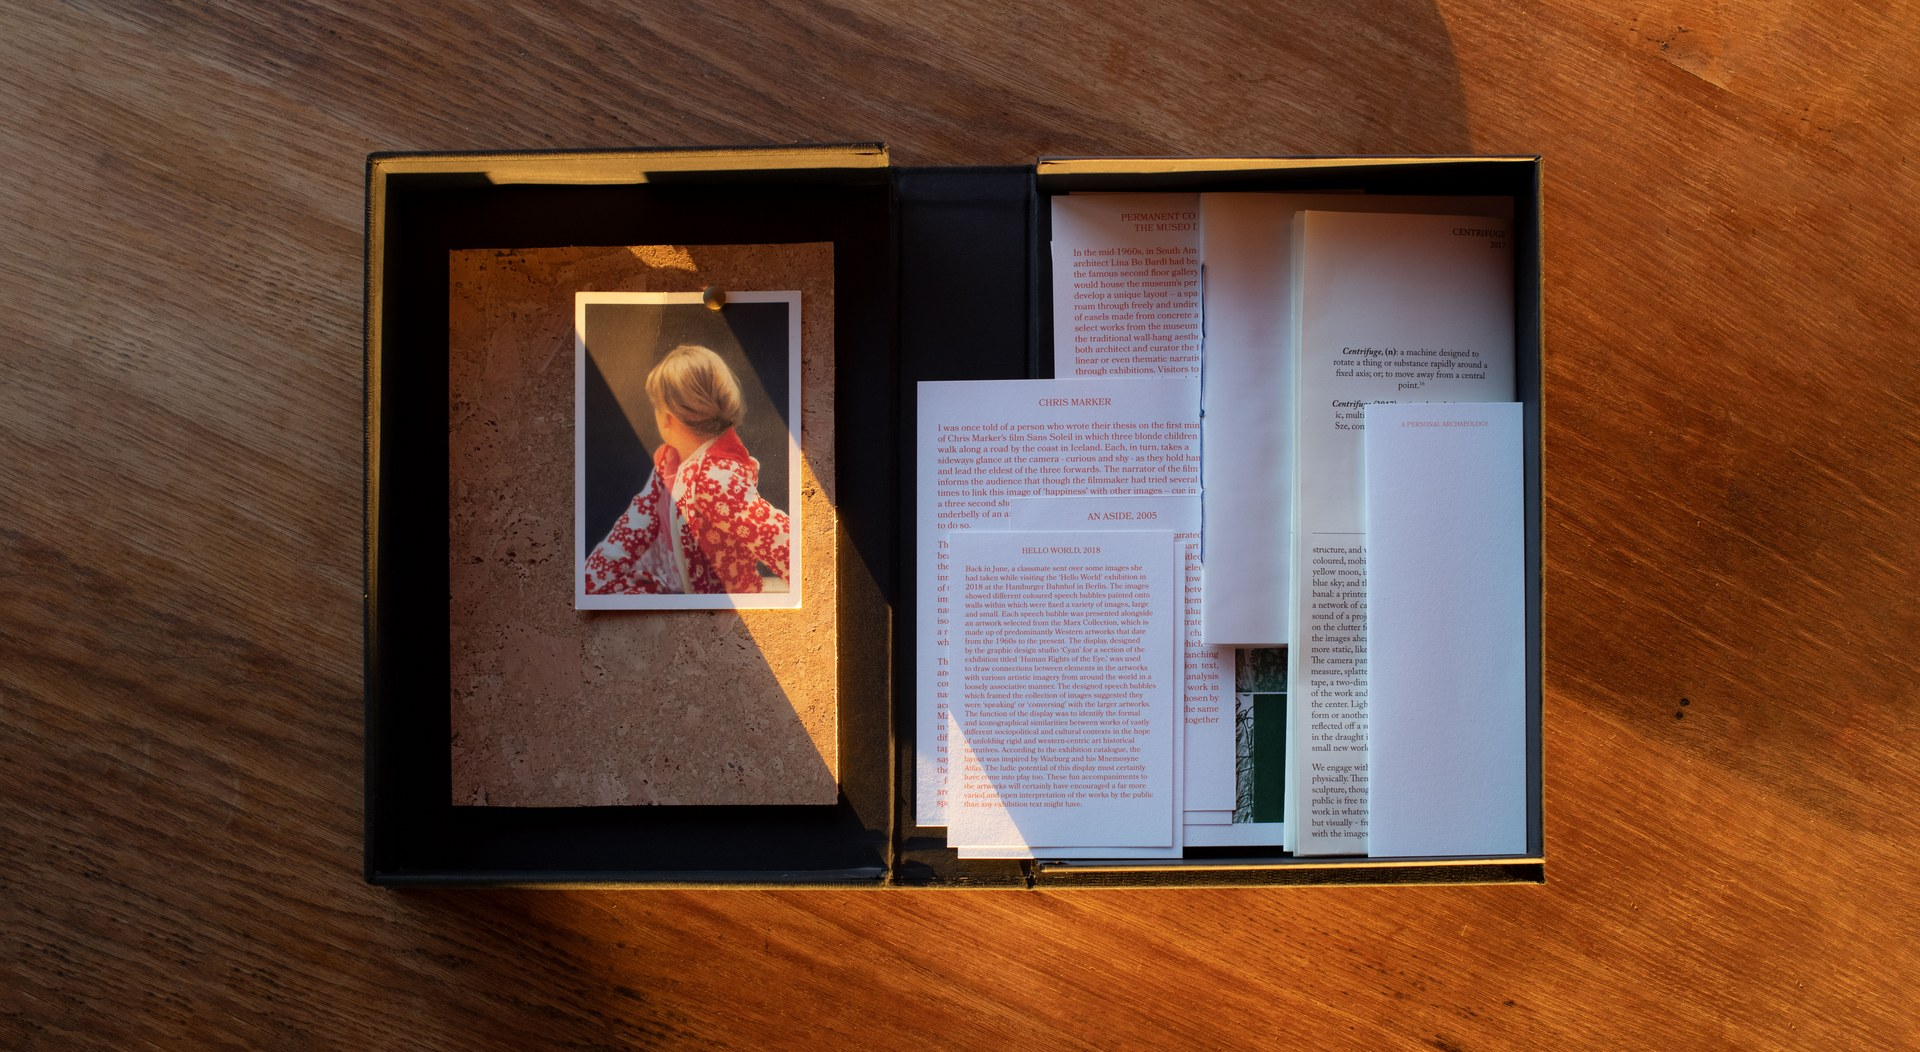 The Pinboard Project: Archive Box. Image: 'Betty', Gerhard Richter, 1988.